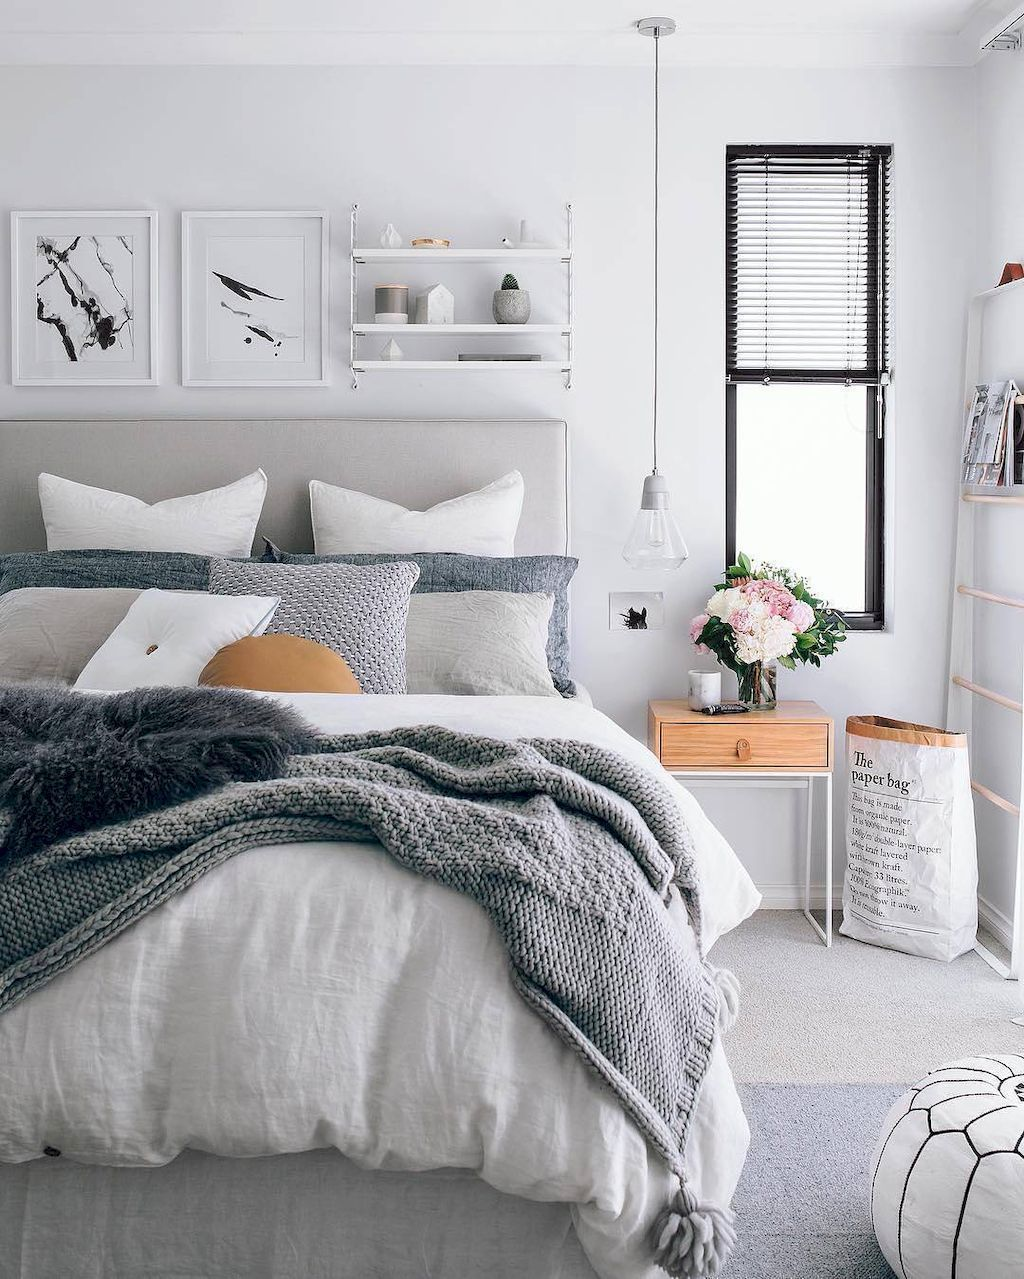 76 Exquisitely Admirable Modern French Bedroom Ideas For Any Occasion Bedroomideas Bedroomd French Bedroom Decor French Master Bedroom Master Bedrooms Decor